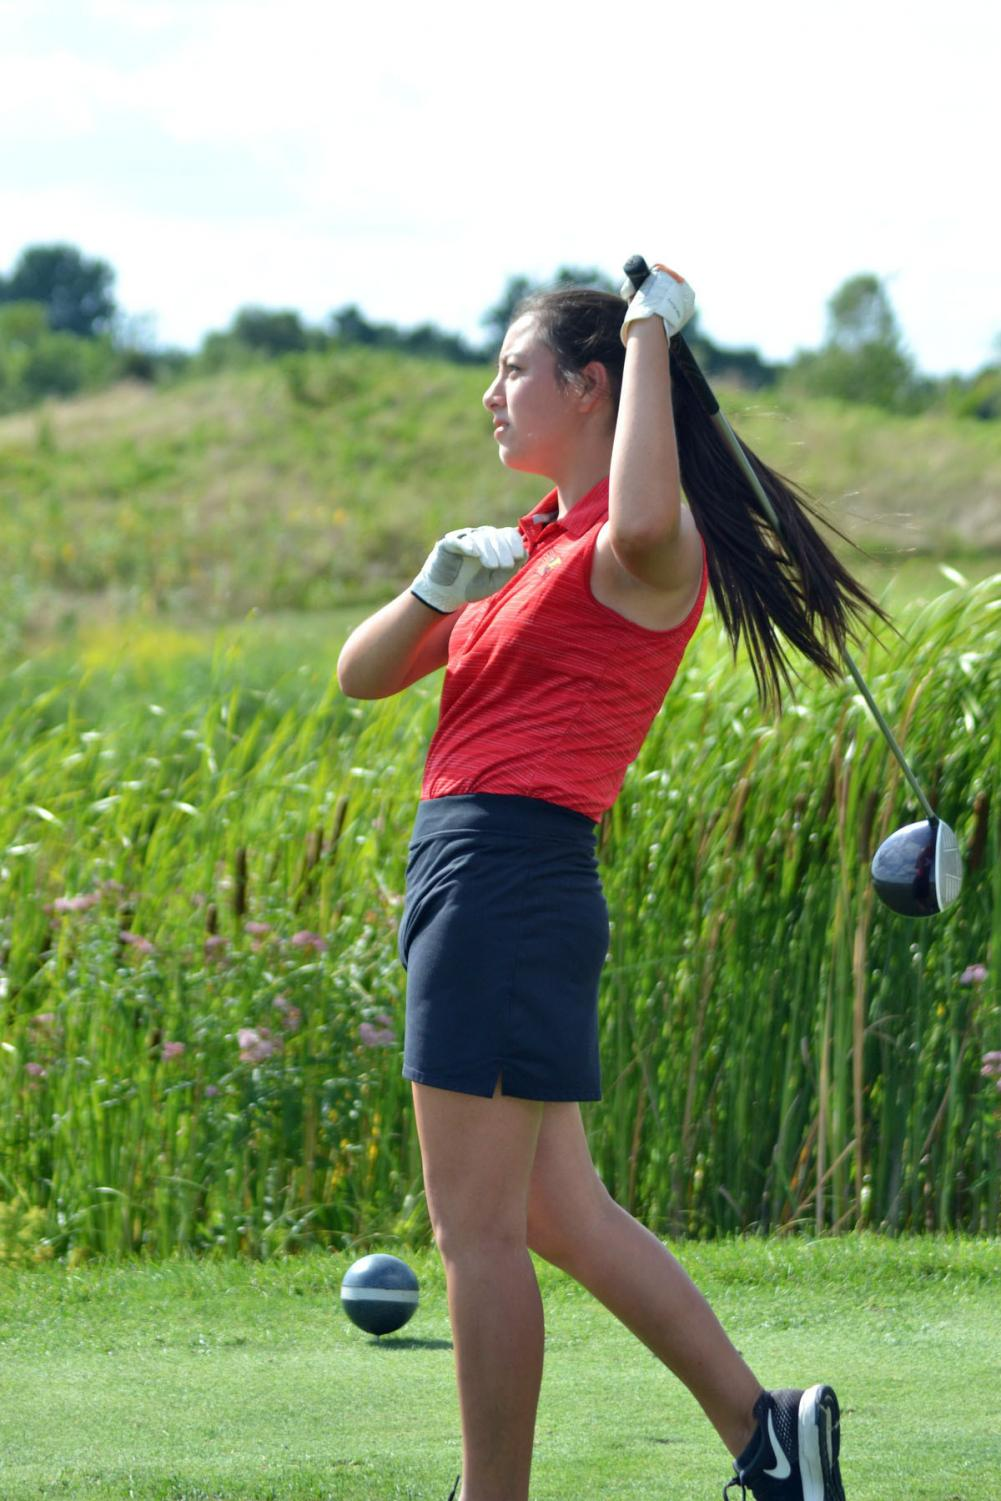 Sophomore+Sophie+Chan+kicks+off+hole+three+for+the+second+round+of+golfers.+Chan+was+followed+up+by+one+of+the+golfers+from+Ben+Davis.+Chan+had+a+career+nine-hole+low+of+43.